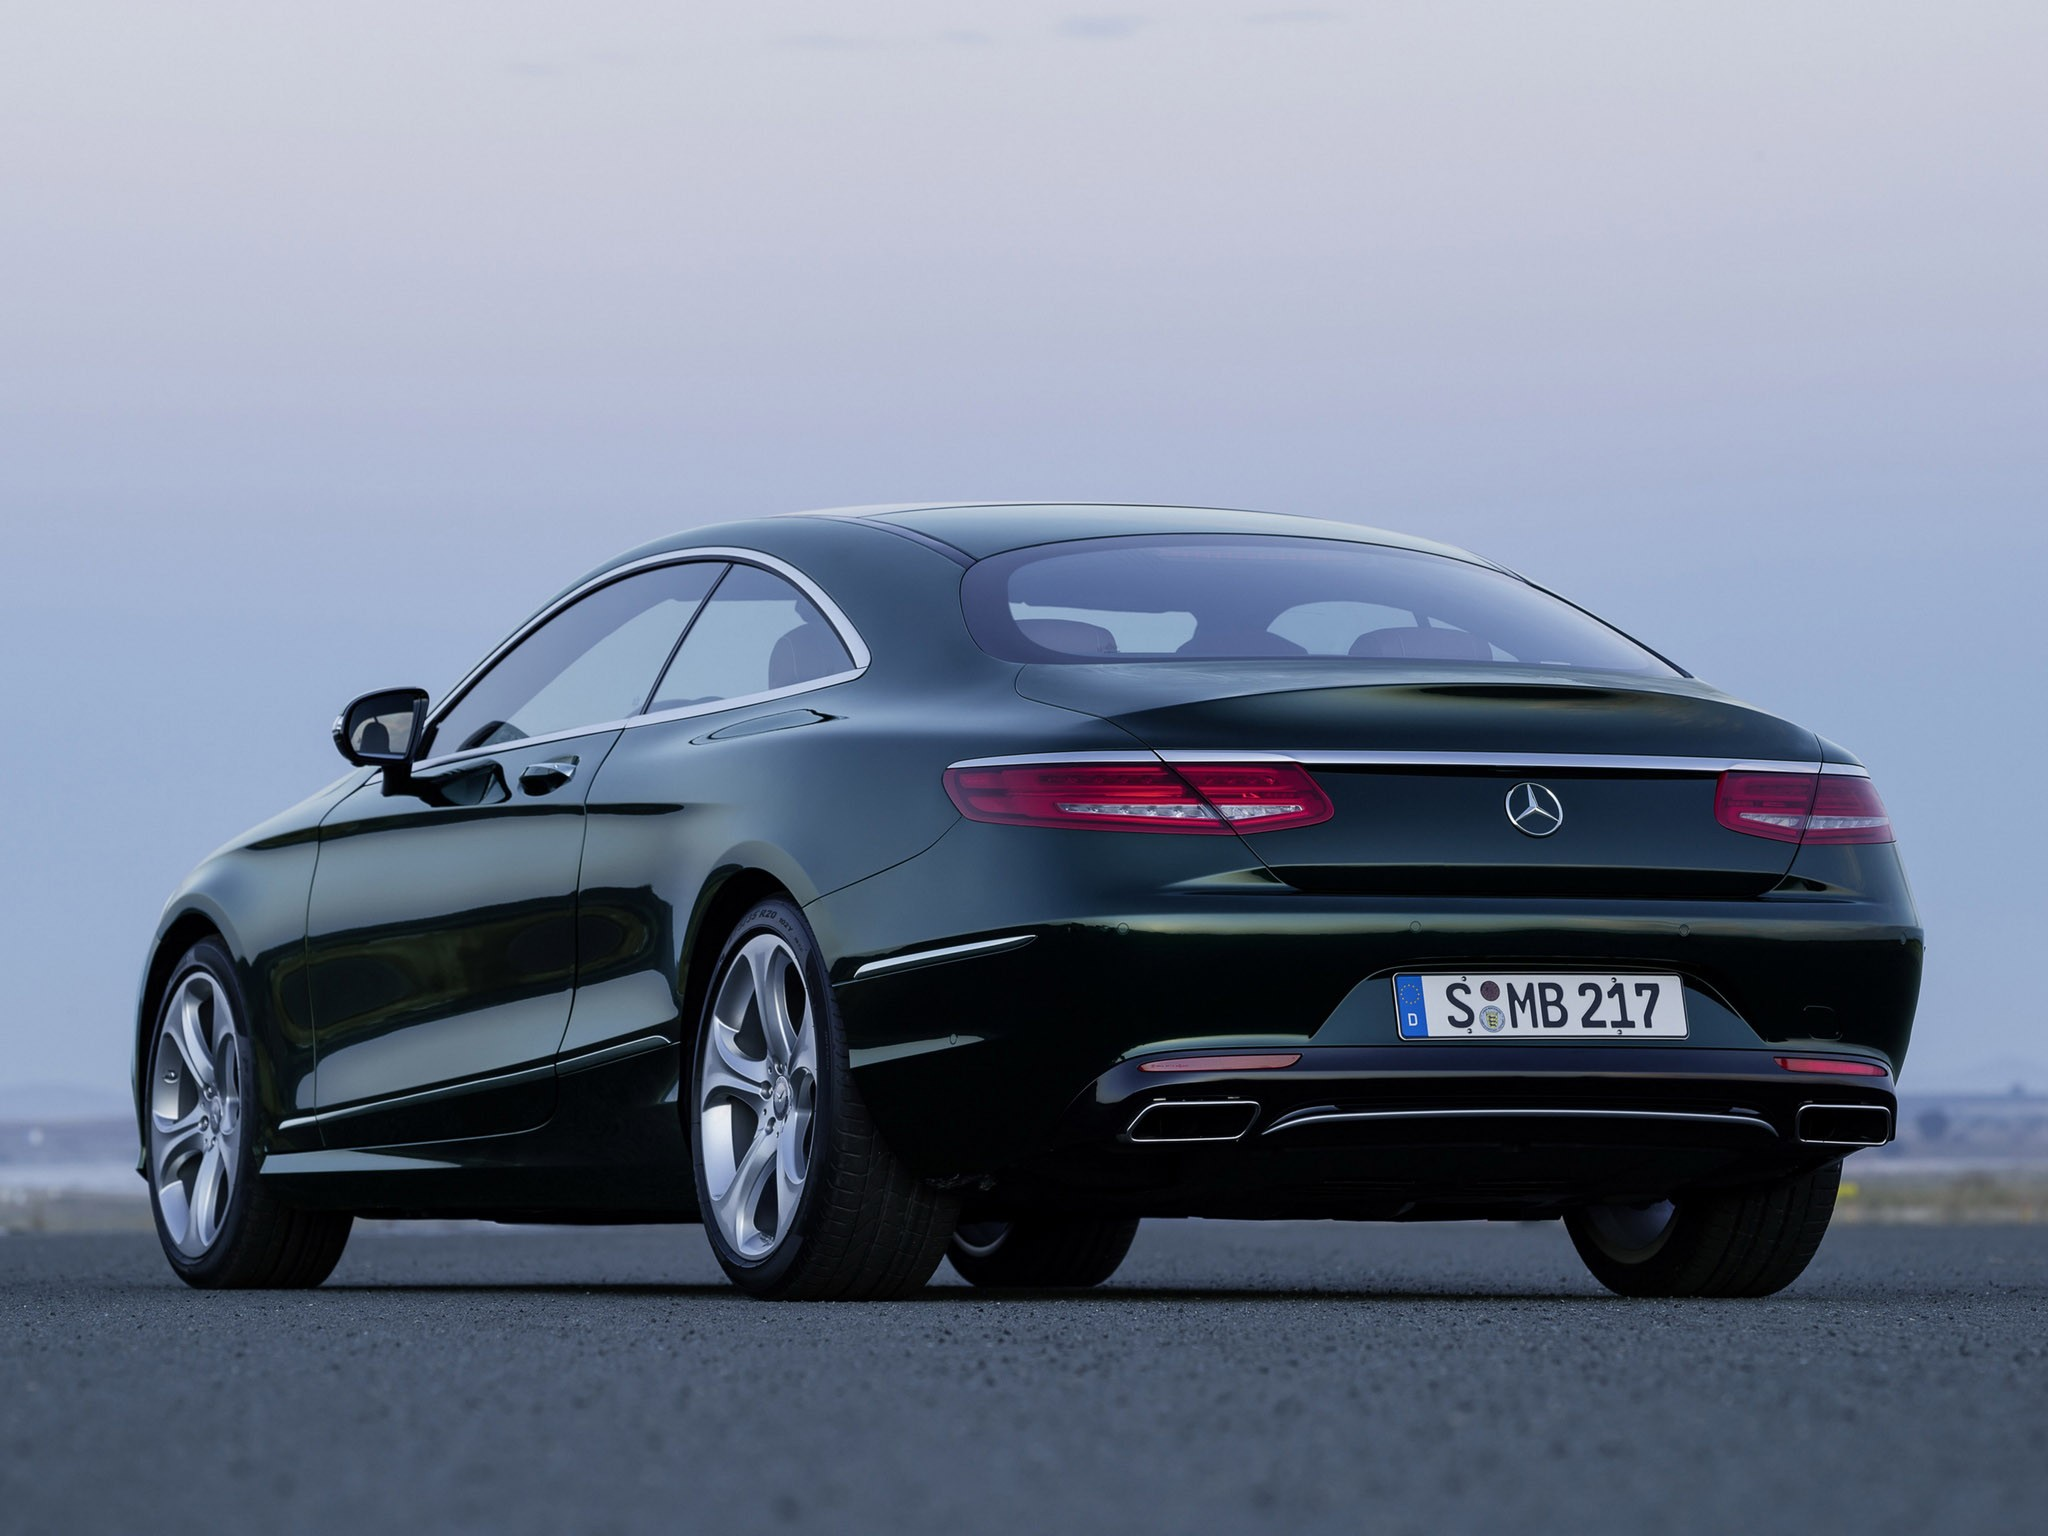 Mercedes Classe S 500 coupe 4matic c217 2014